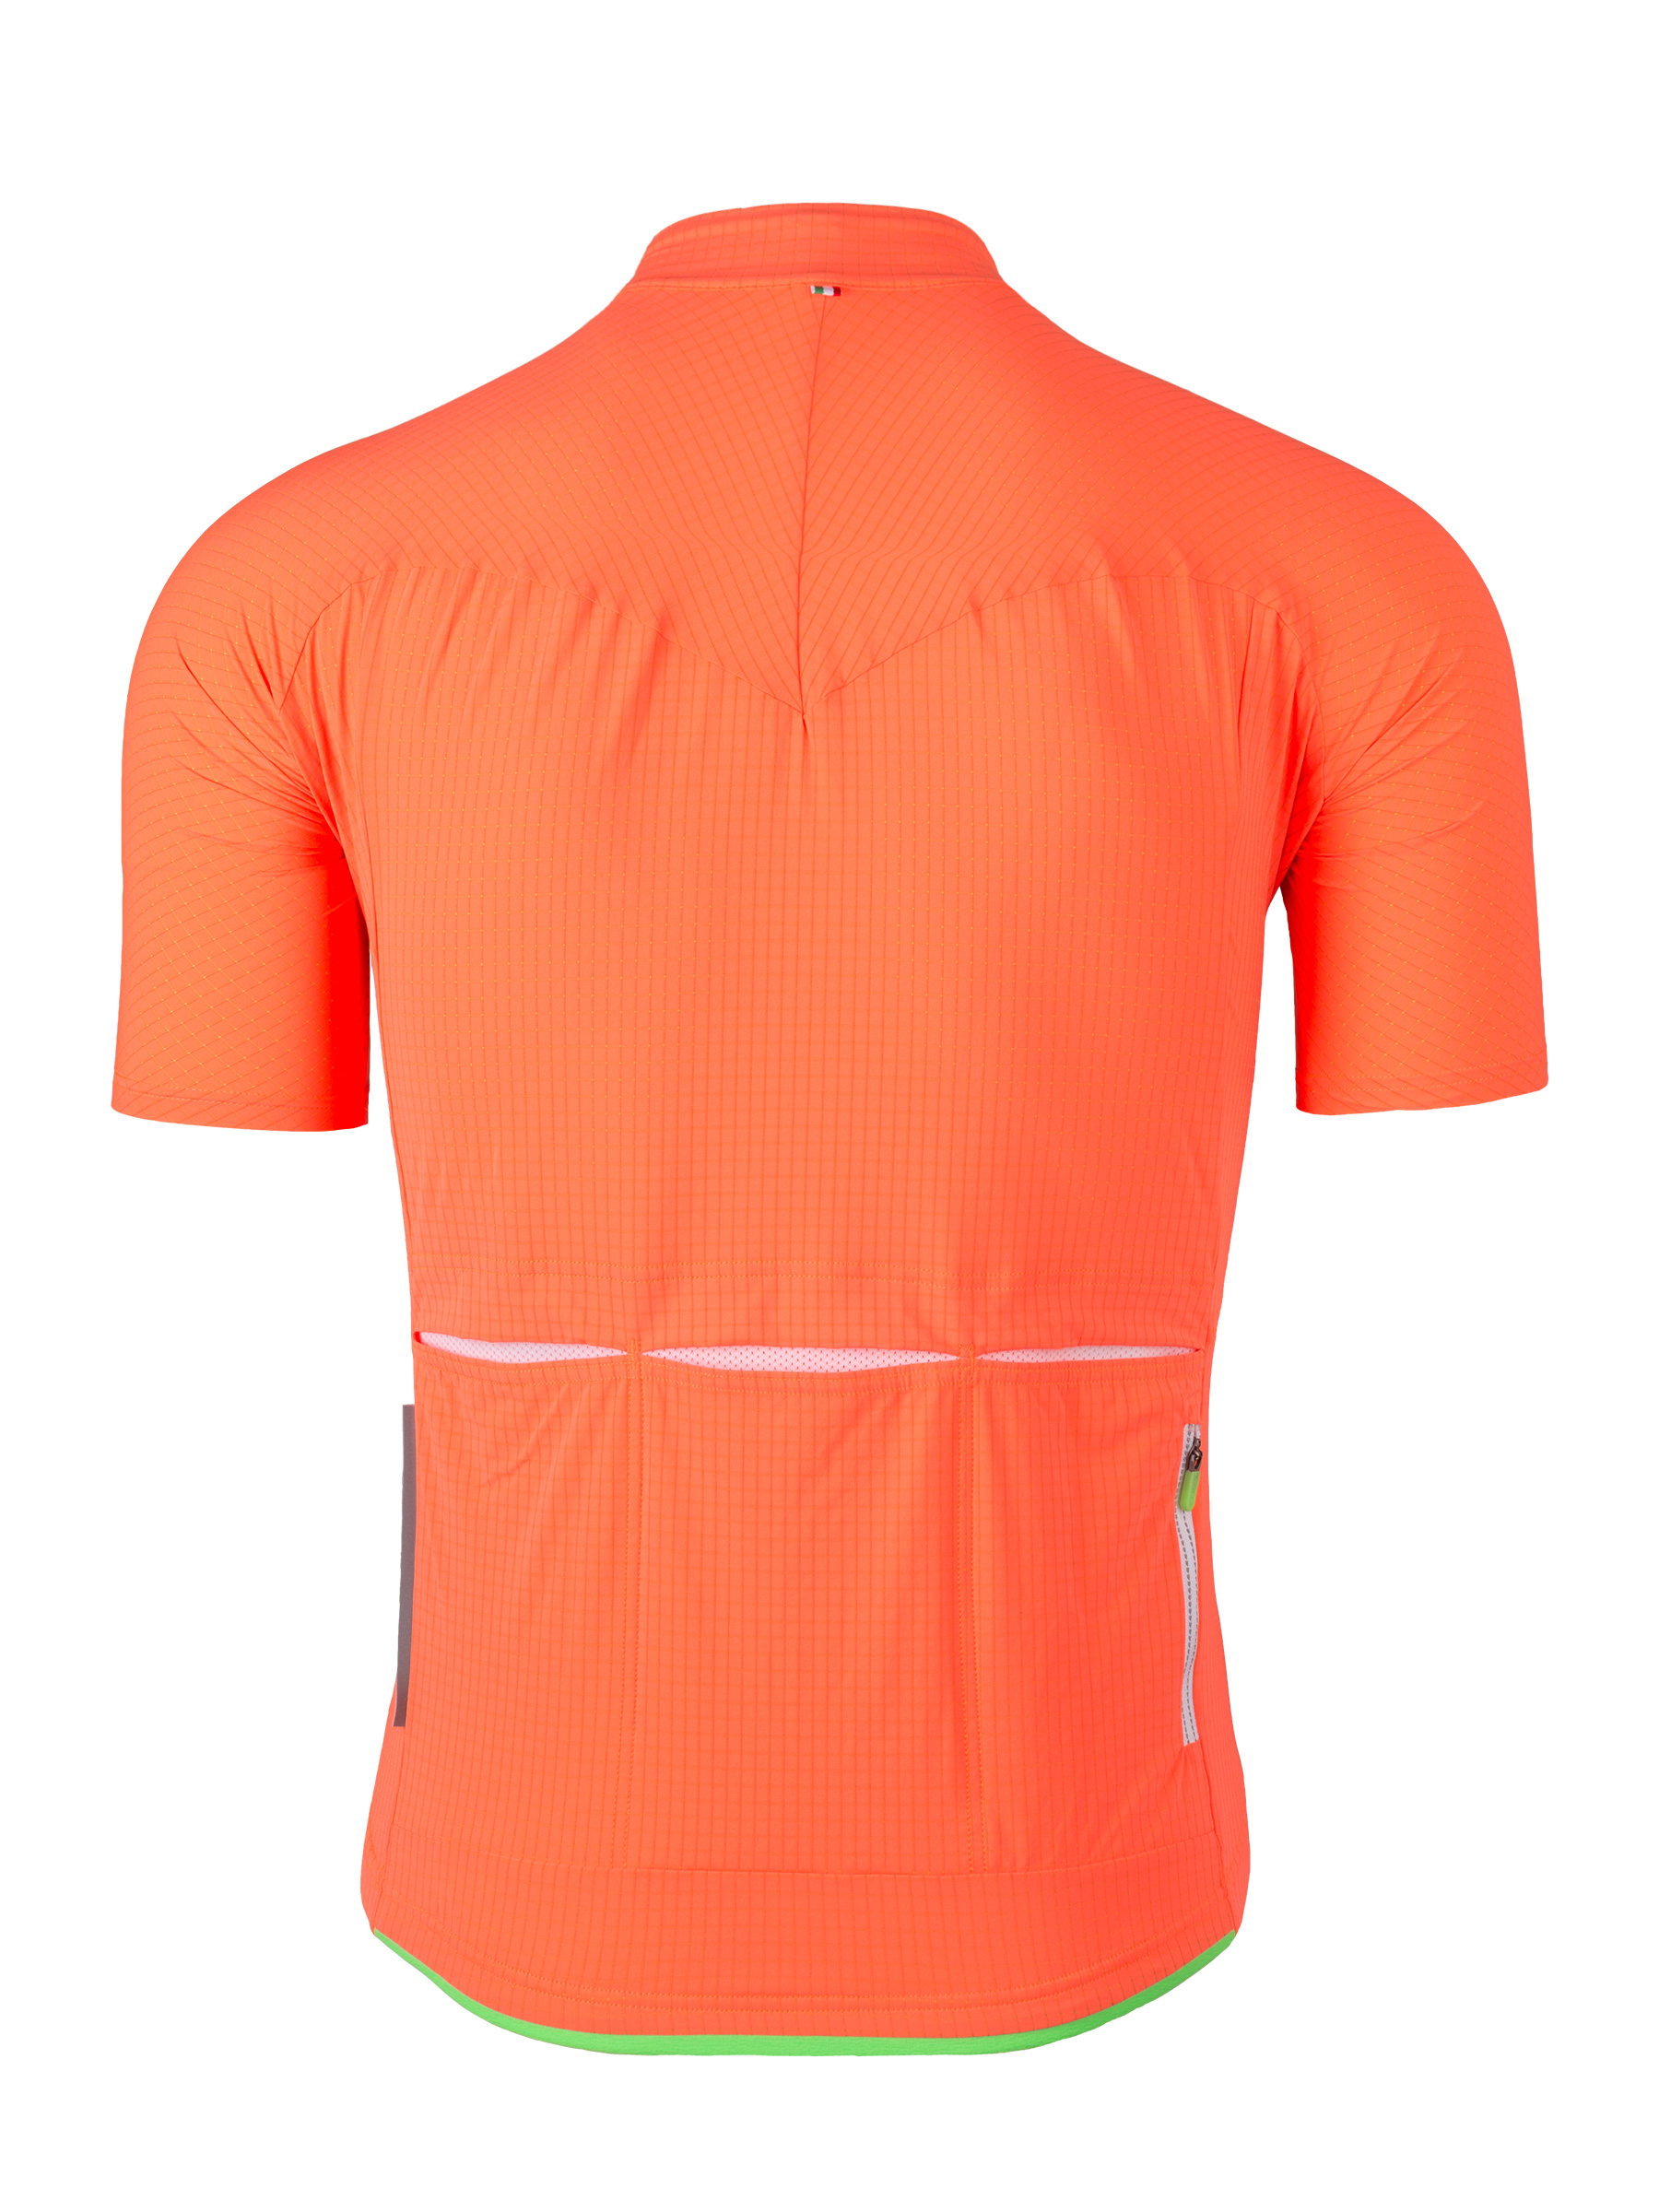 Jersey short sleeve L1 Pinstripe Orange Fluo